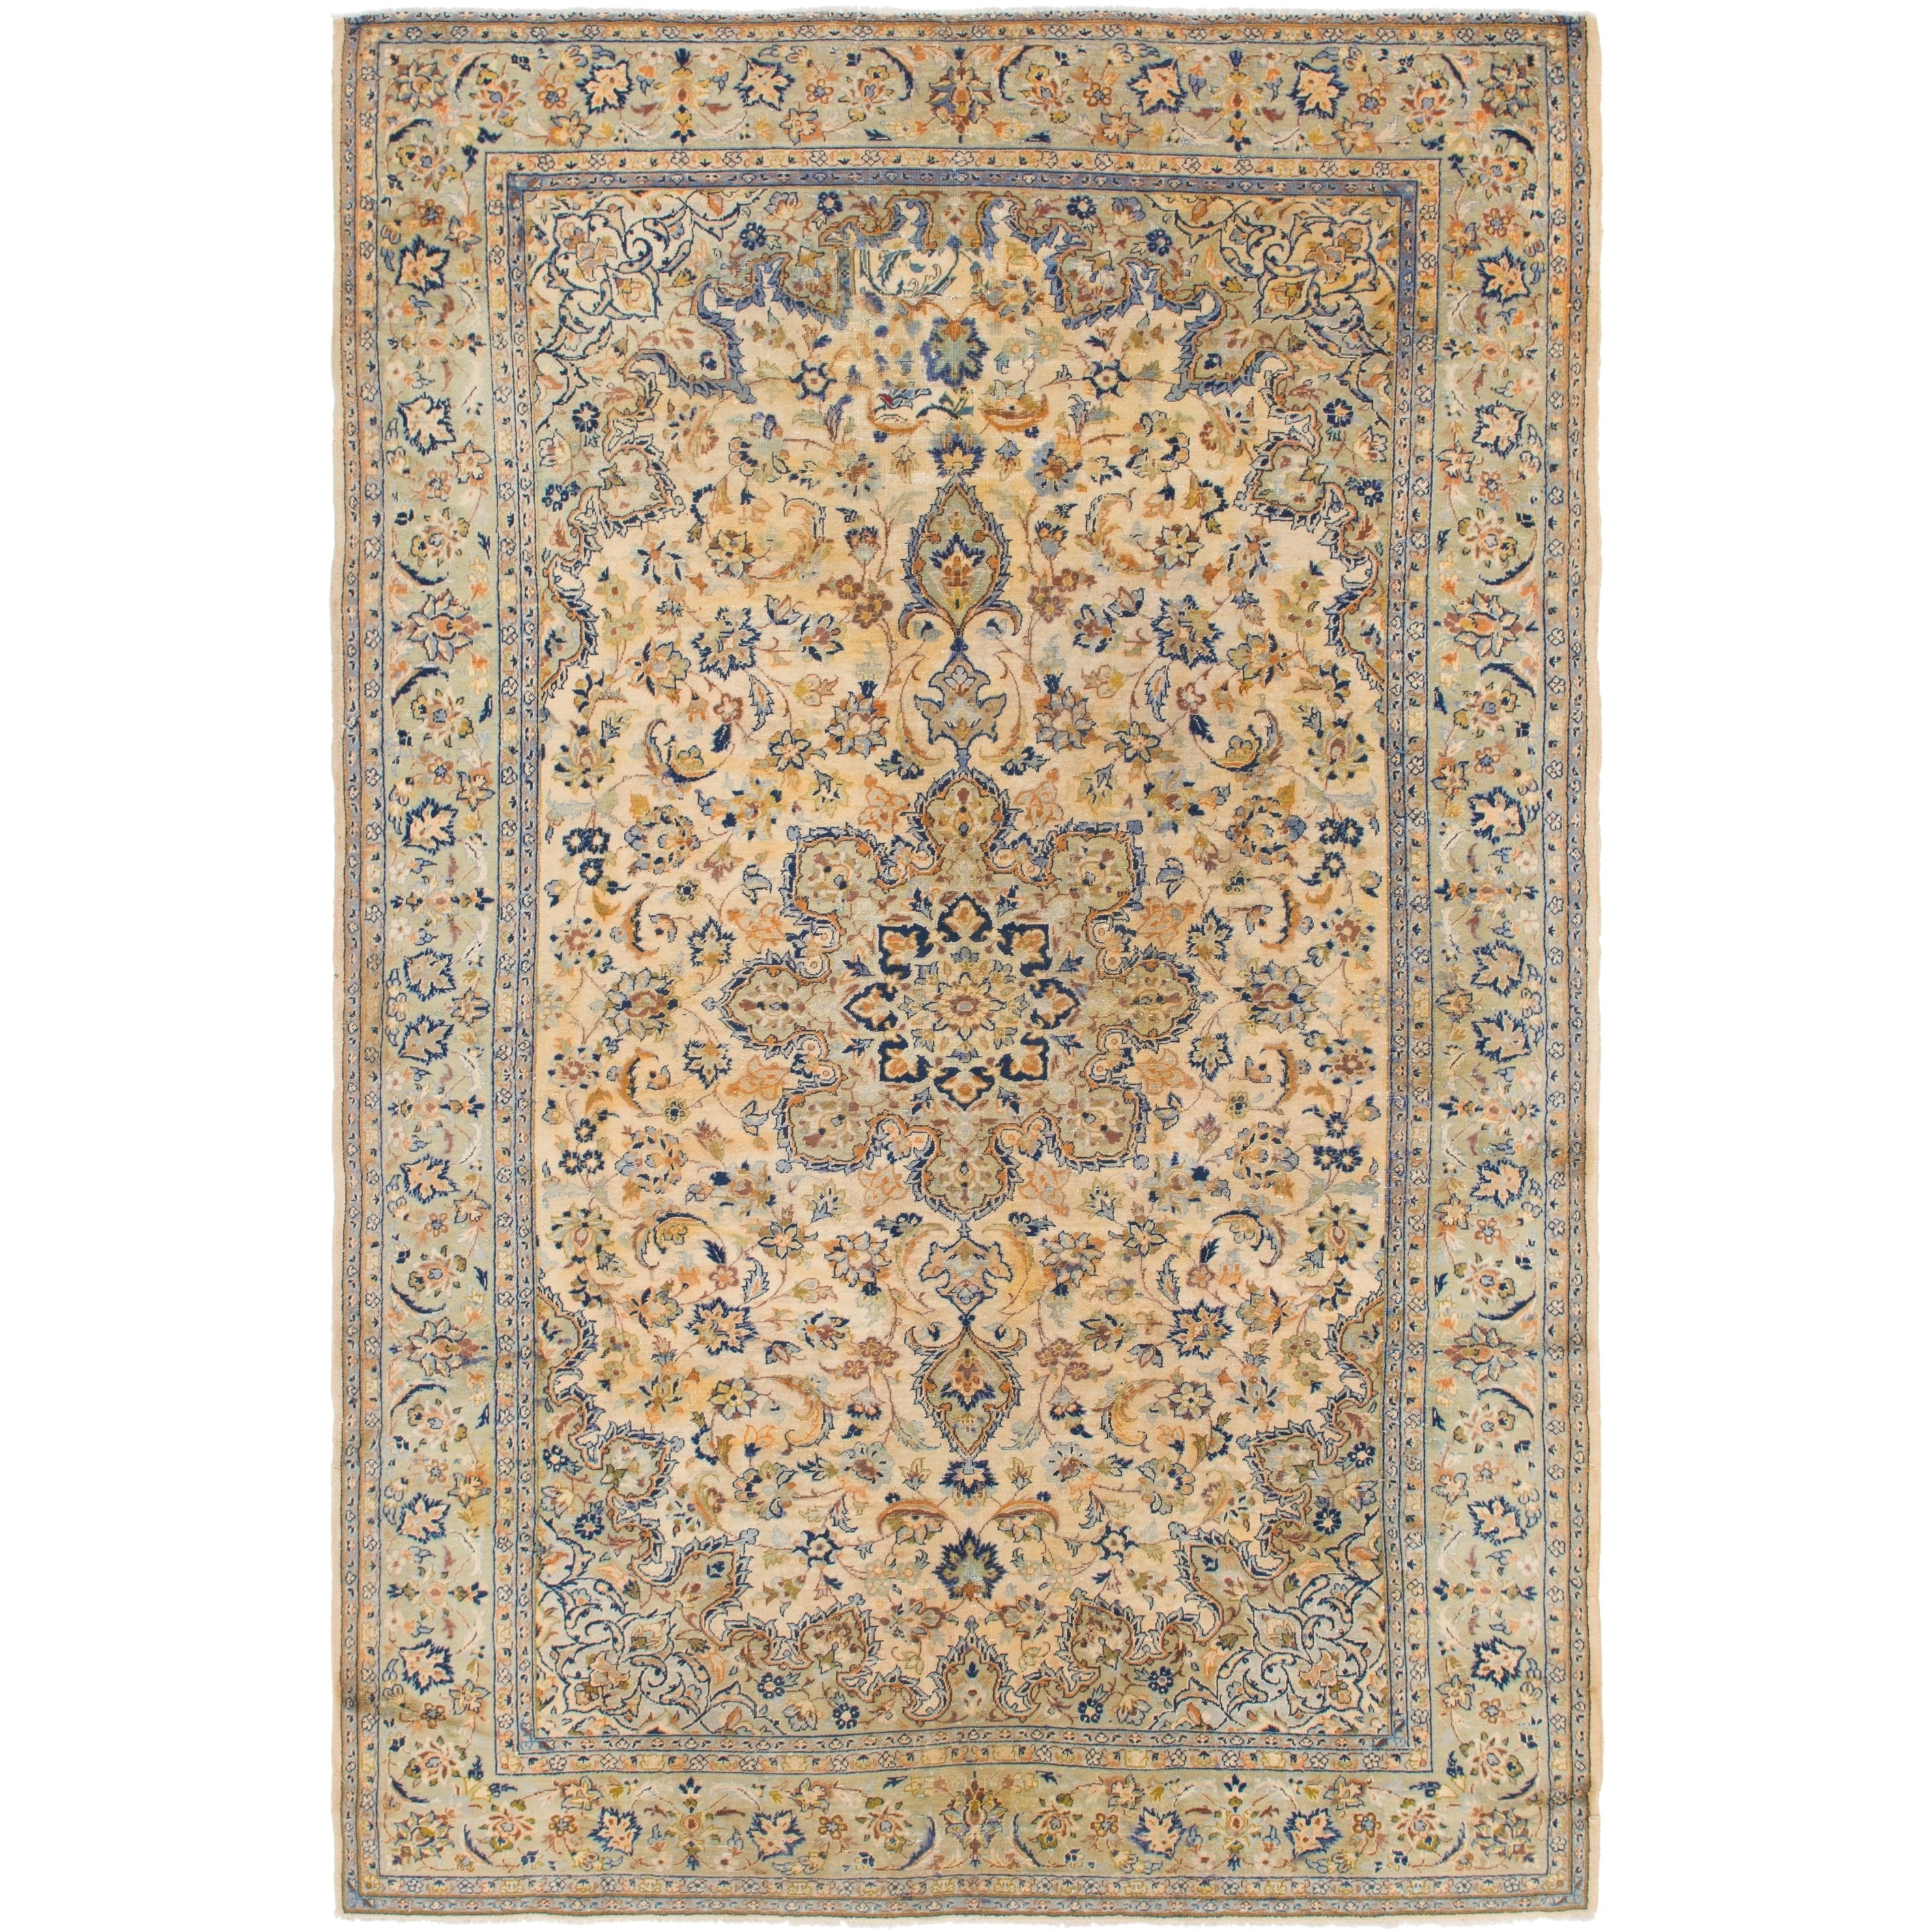 Hand Knotted Kashan Semi Antique Wool Area Rug - 8 x 12 5 (Cream - 8 x 12 5)